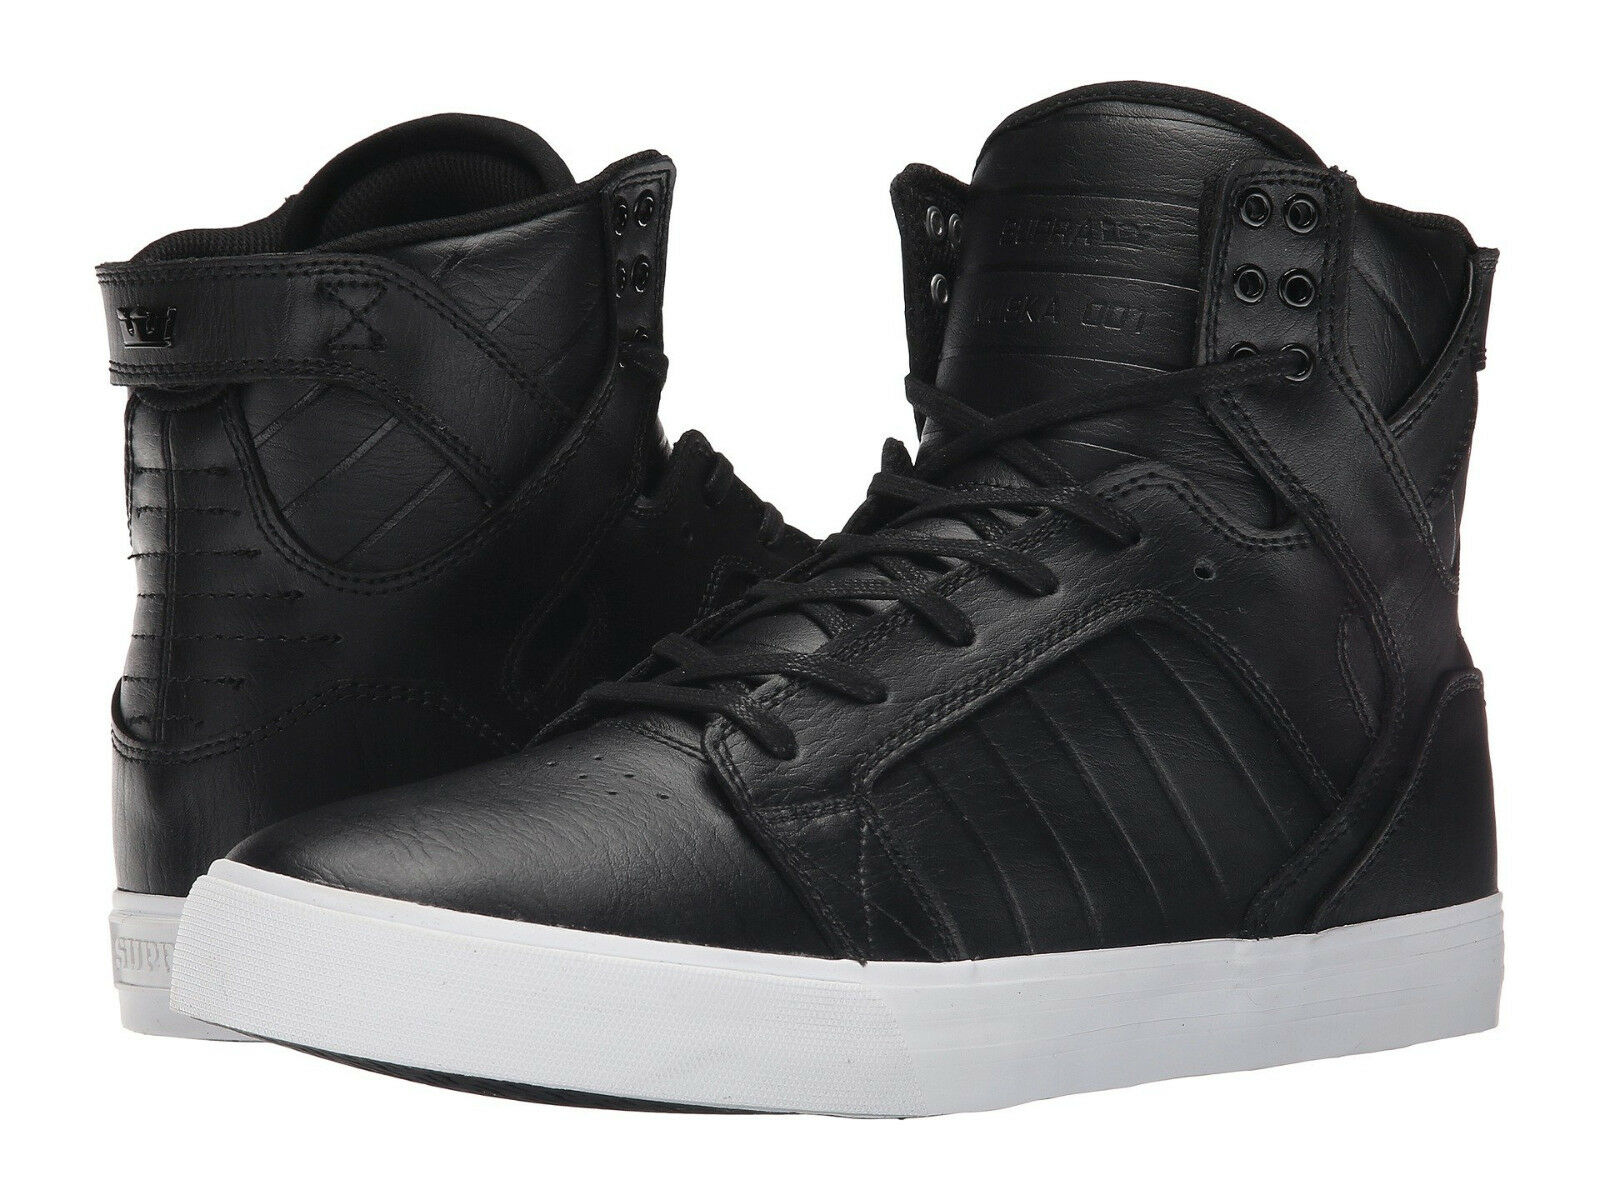 NEW SUPRA SKYTOP schwarz Weiß LEATHER LEATHER LEATHER SURF SNOW MX SKATEBOARD BMX SPORTS schuhe 15 8a23cb